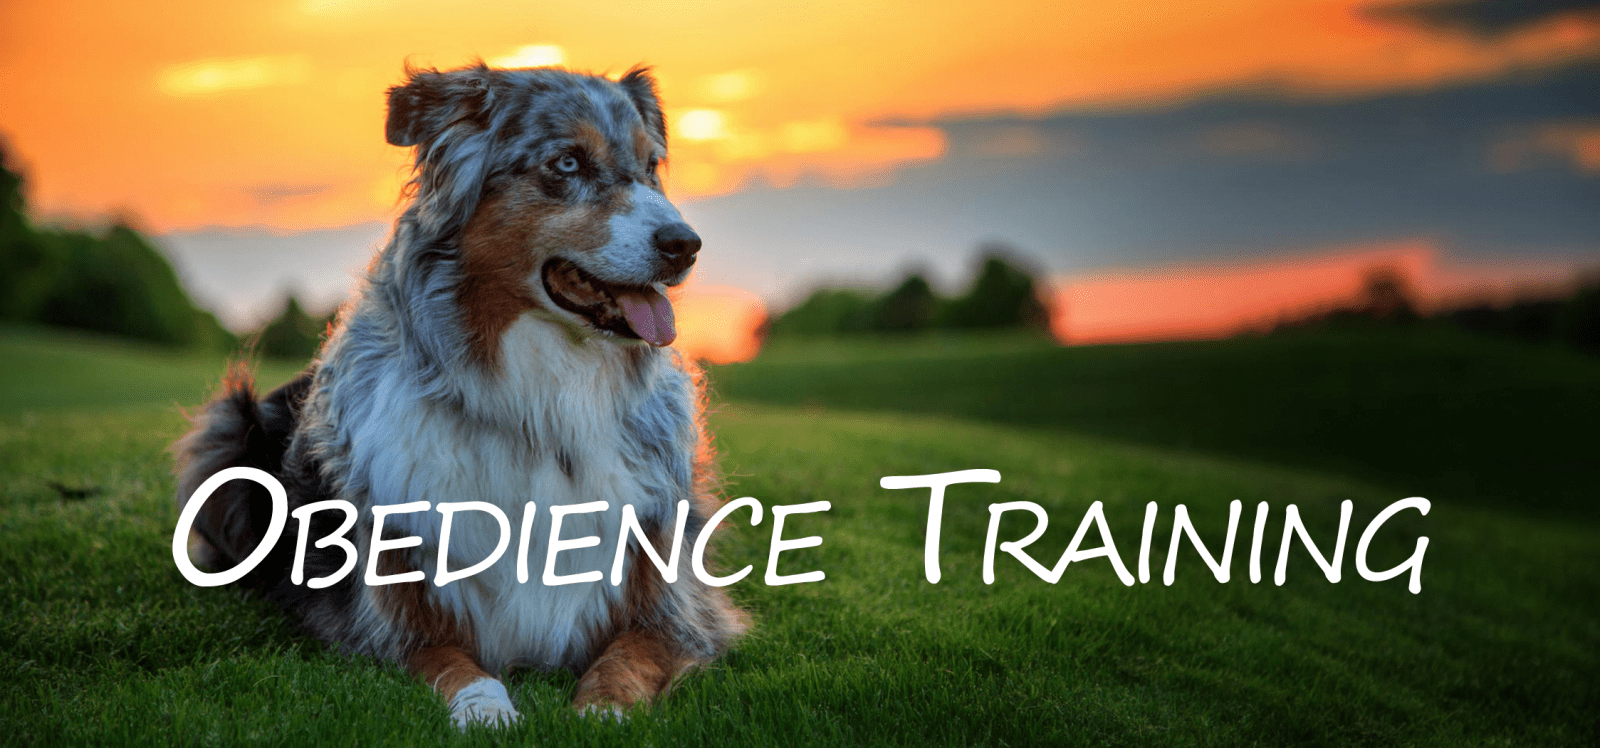 Southern Tradition Kennels Dog Training Obedience Boarding South Ga Dog Training